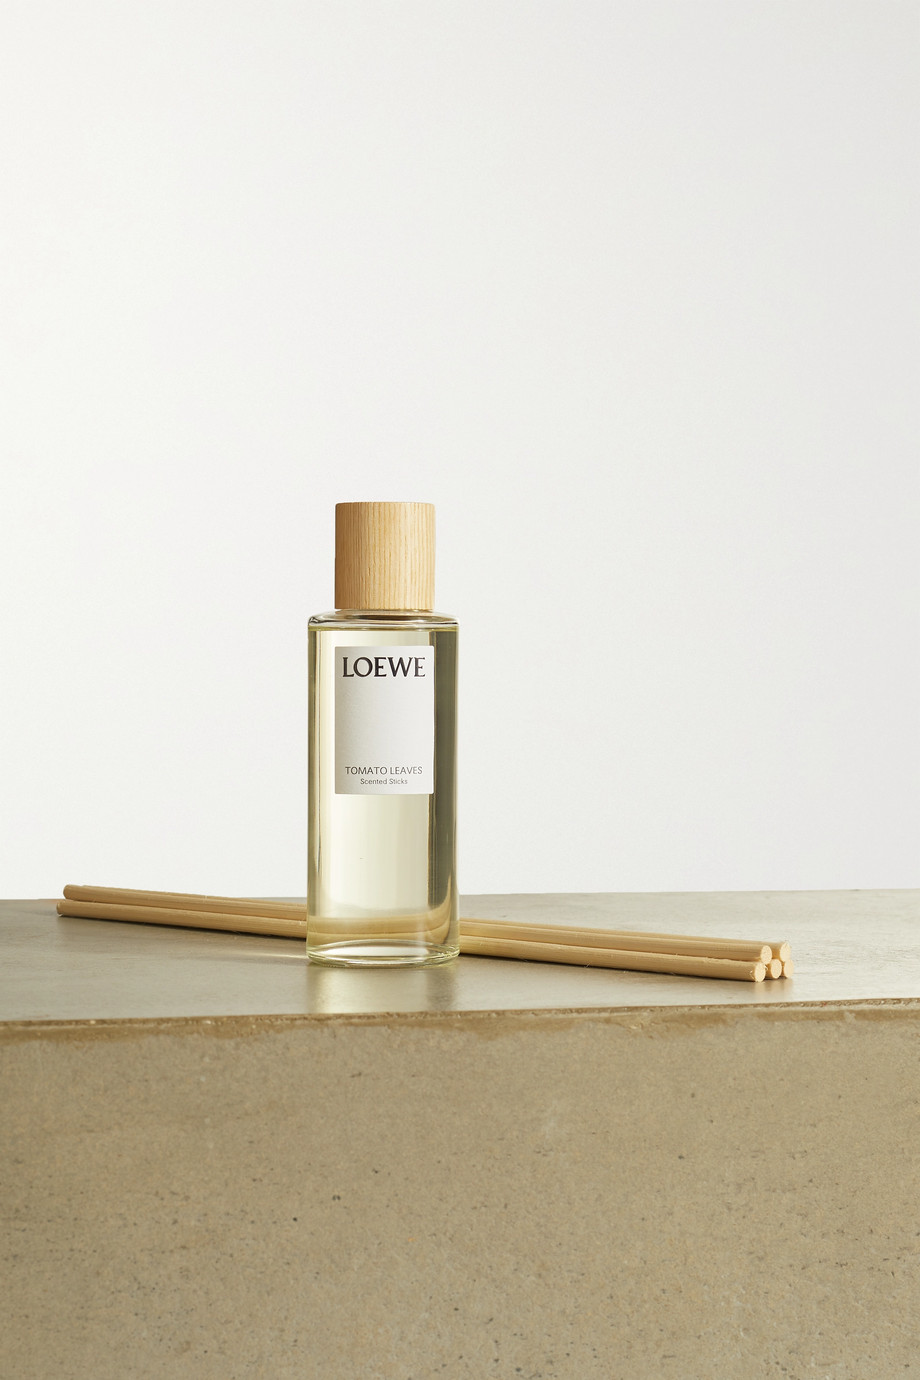 LOEWE Home Scents Scented Sticks diffuser refill - Tomato Leaves, 245ml